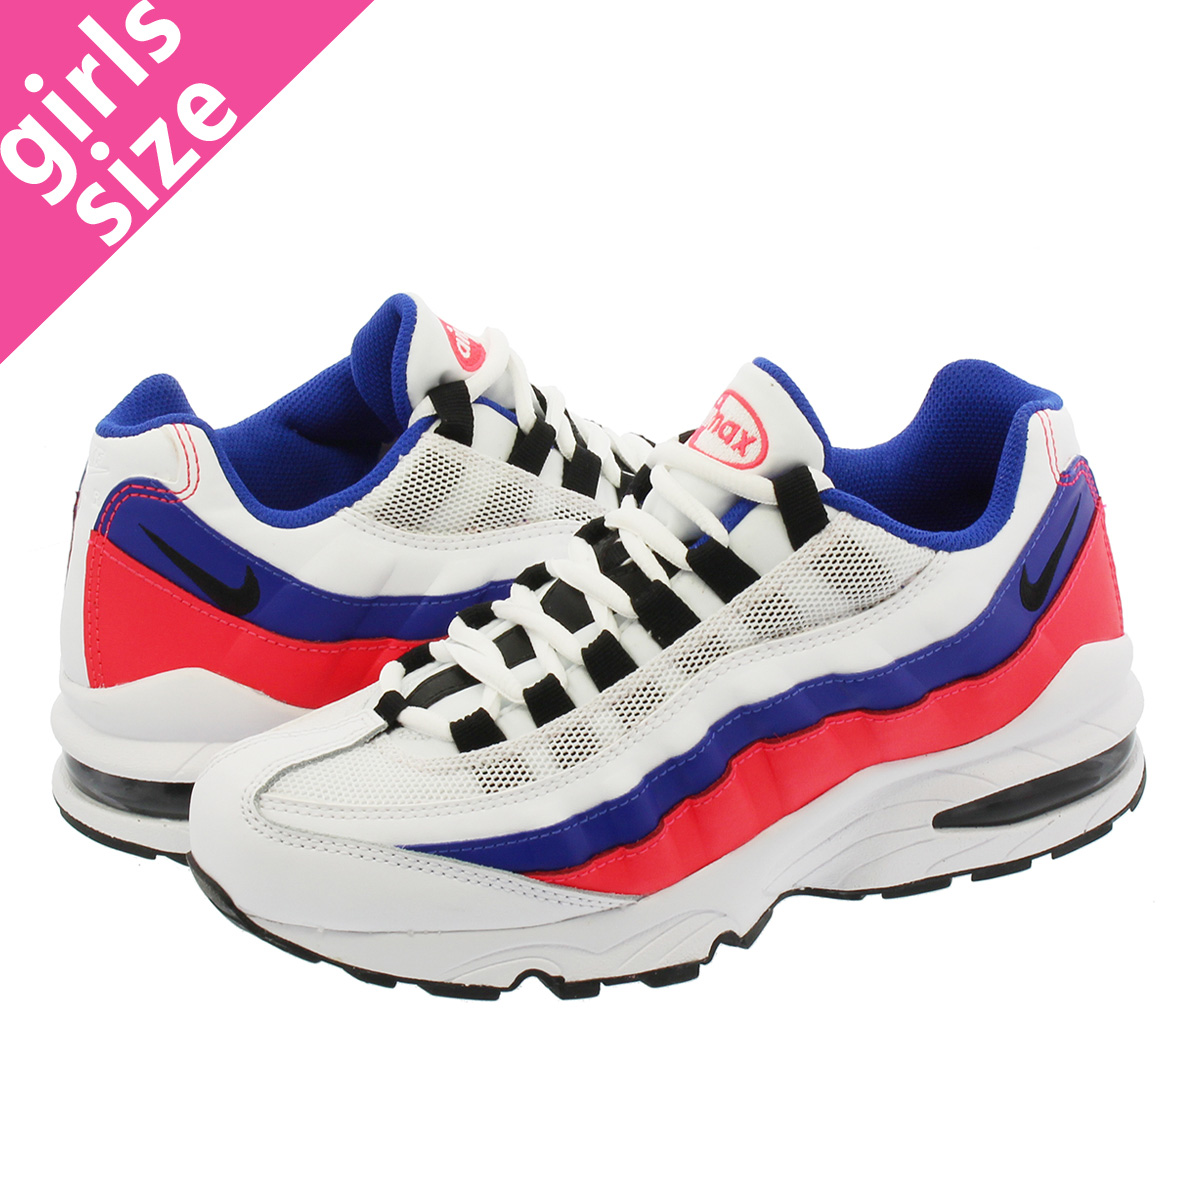 3796ef744da4ac SELECT SHOP LOWTEX  AIR MAX 95 GS Kie Ney AMAX 95 GS WHITE ULTRA  MARINE SOLAR RED